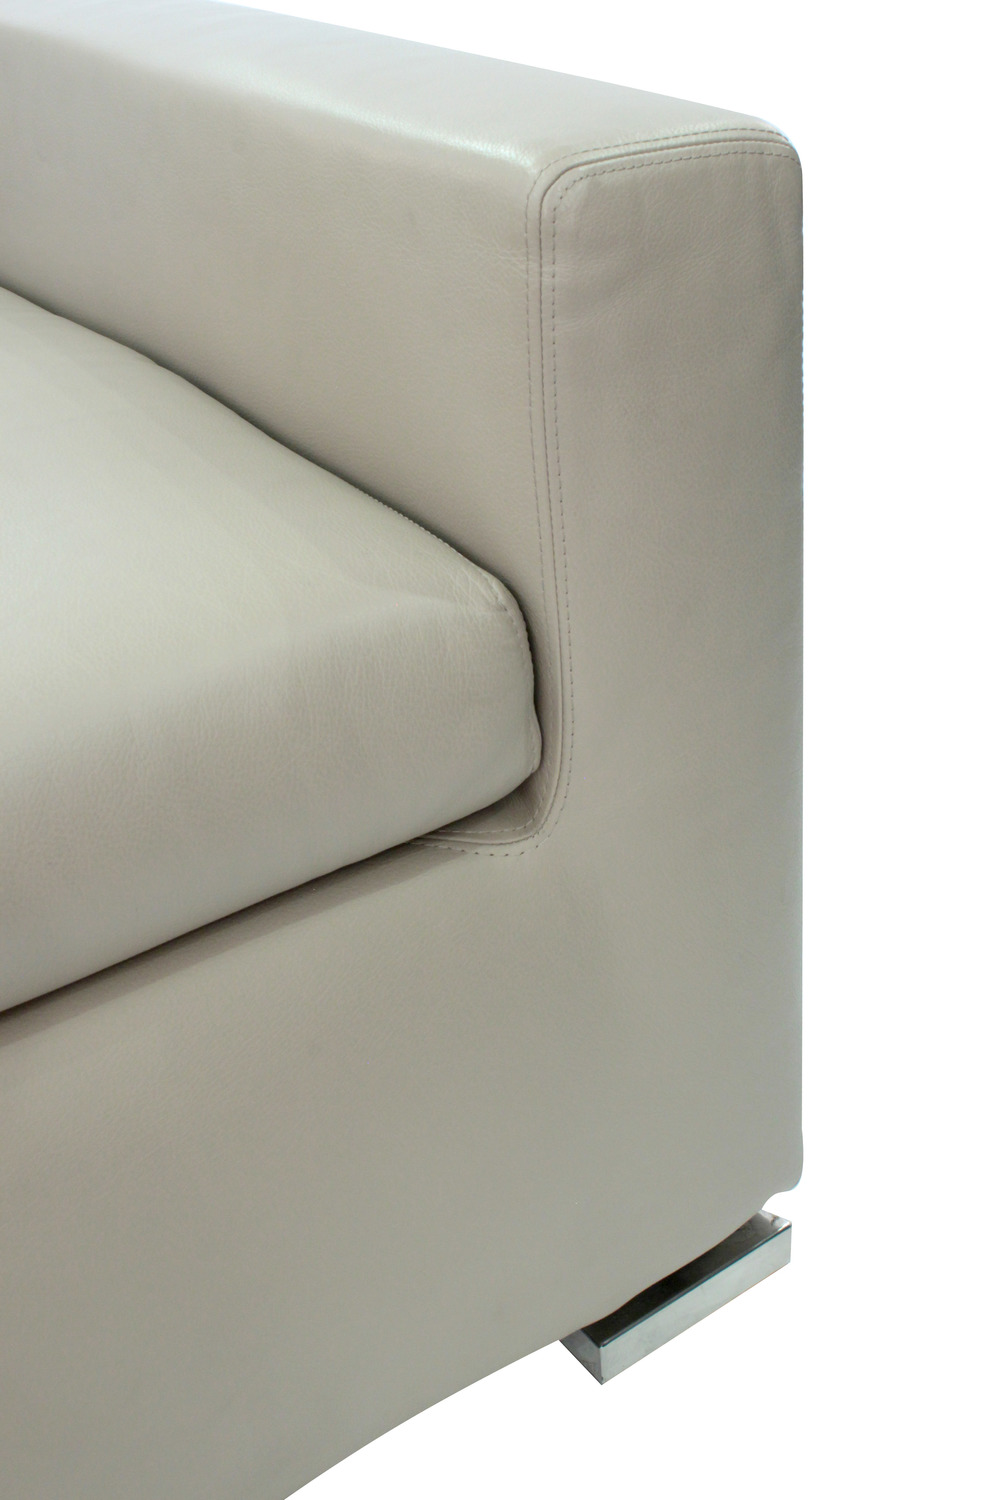 Minotti 65 cleanline lthr clubchairs54 detail6 hires.jpg